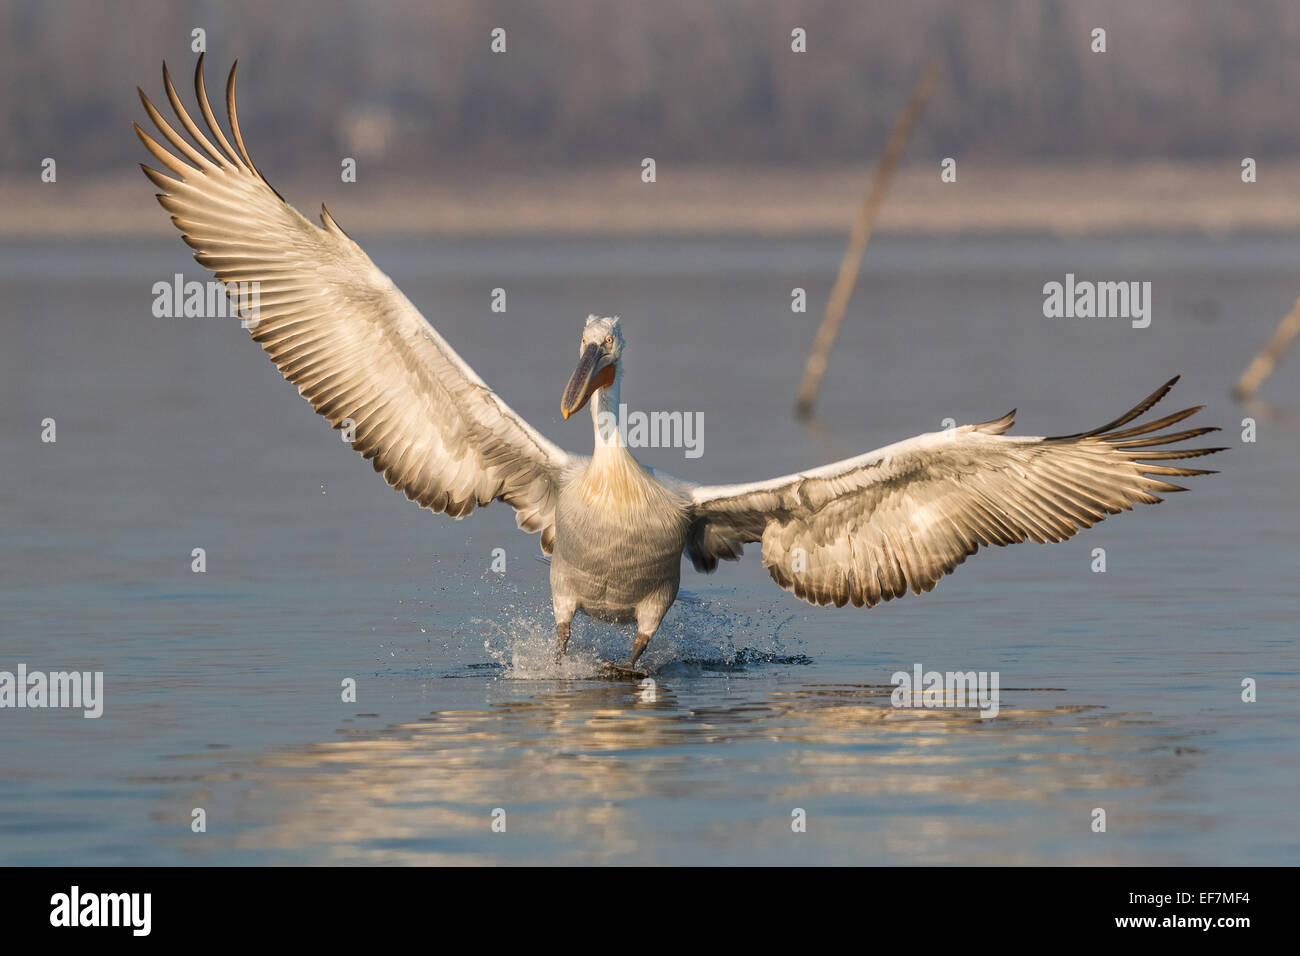 Dalmatian Pelican (Pelecanus crispus) in golden evening sunshine lands on Lake Kerkini in Northern Greece Stock Photo